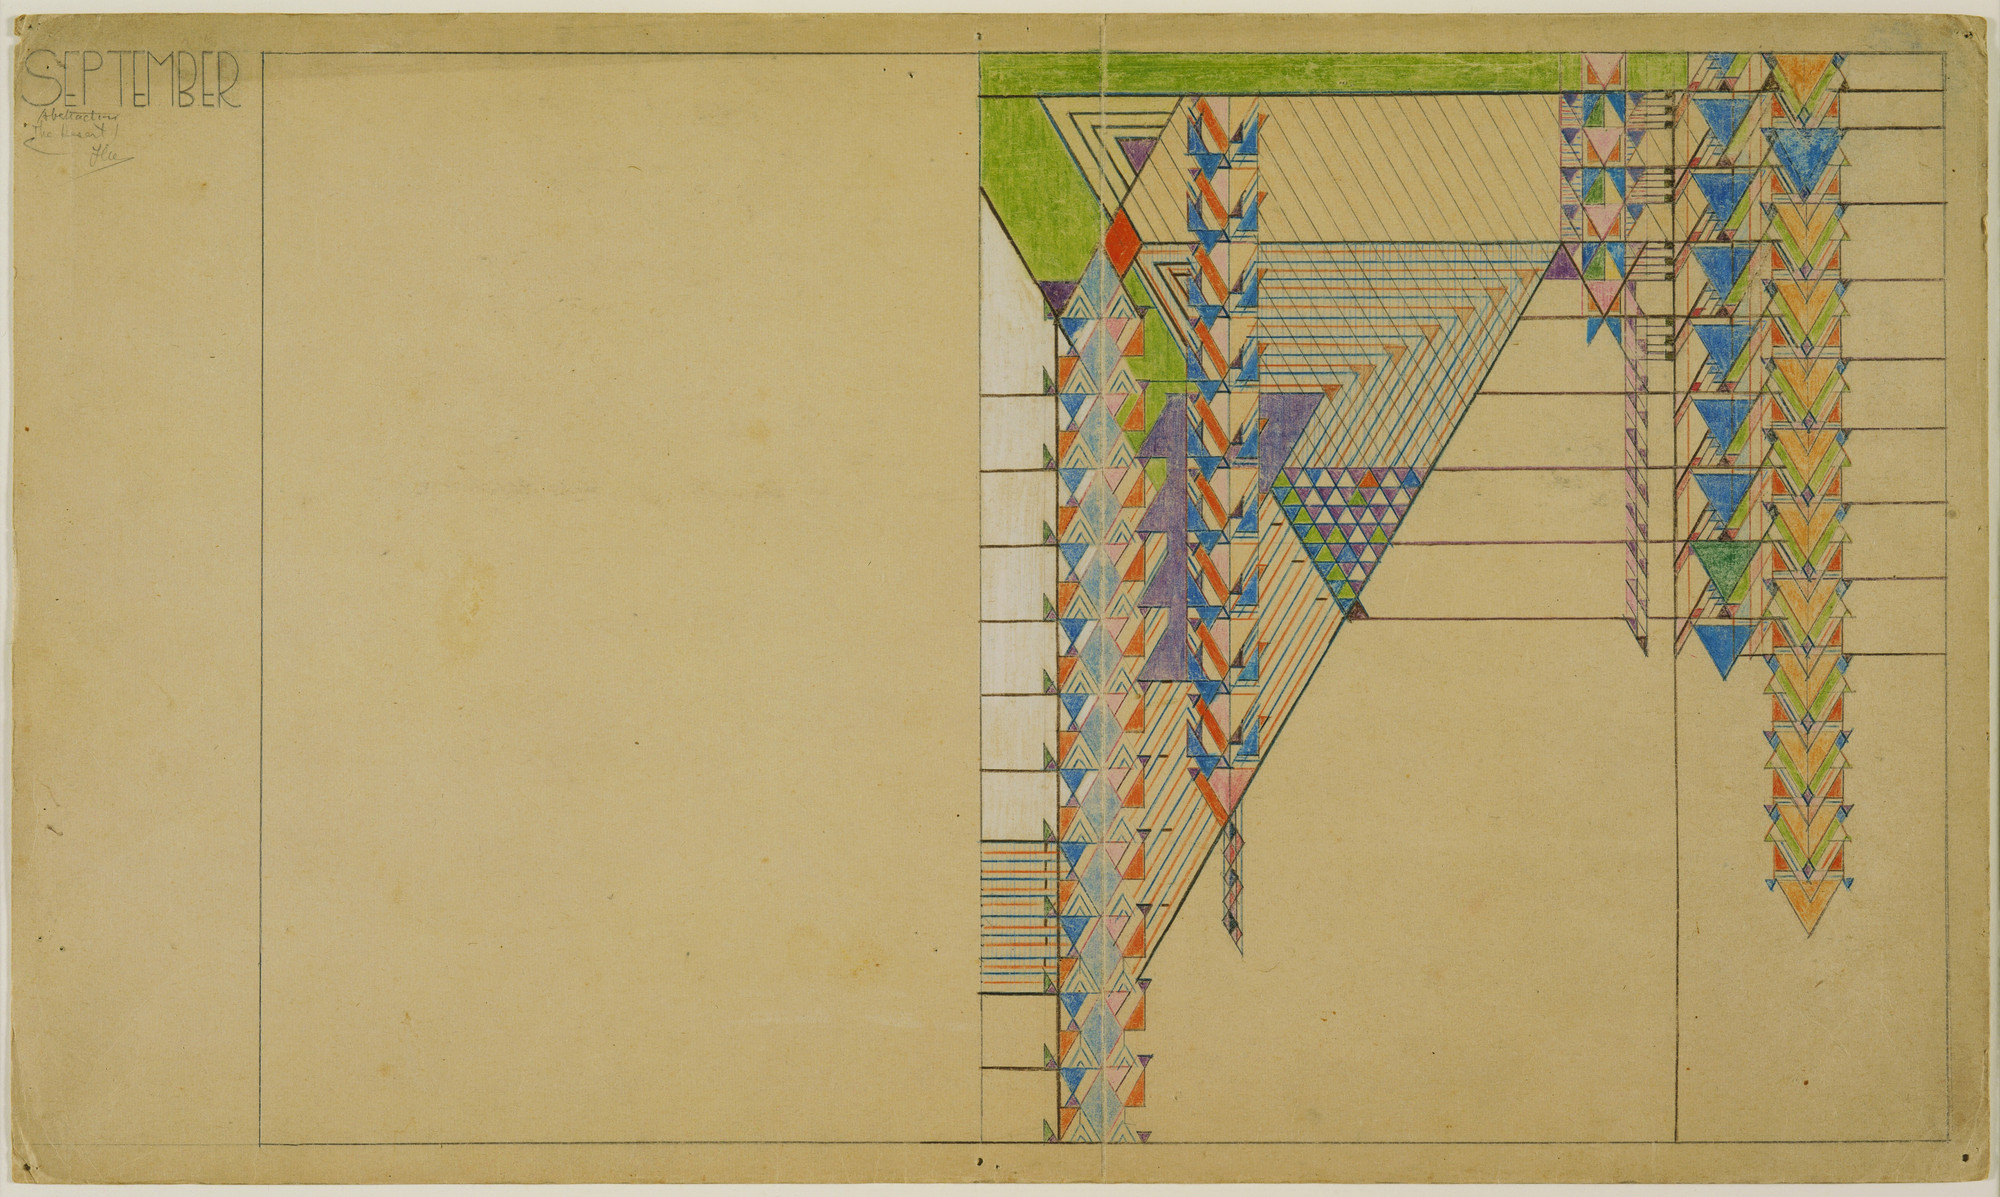 Frank Lloyd Wright. September Abstractions, The Desert, design for Liberty Magazine cover. (1926-27)